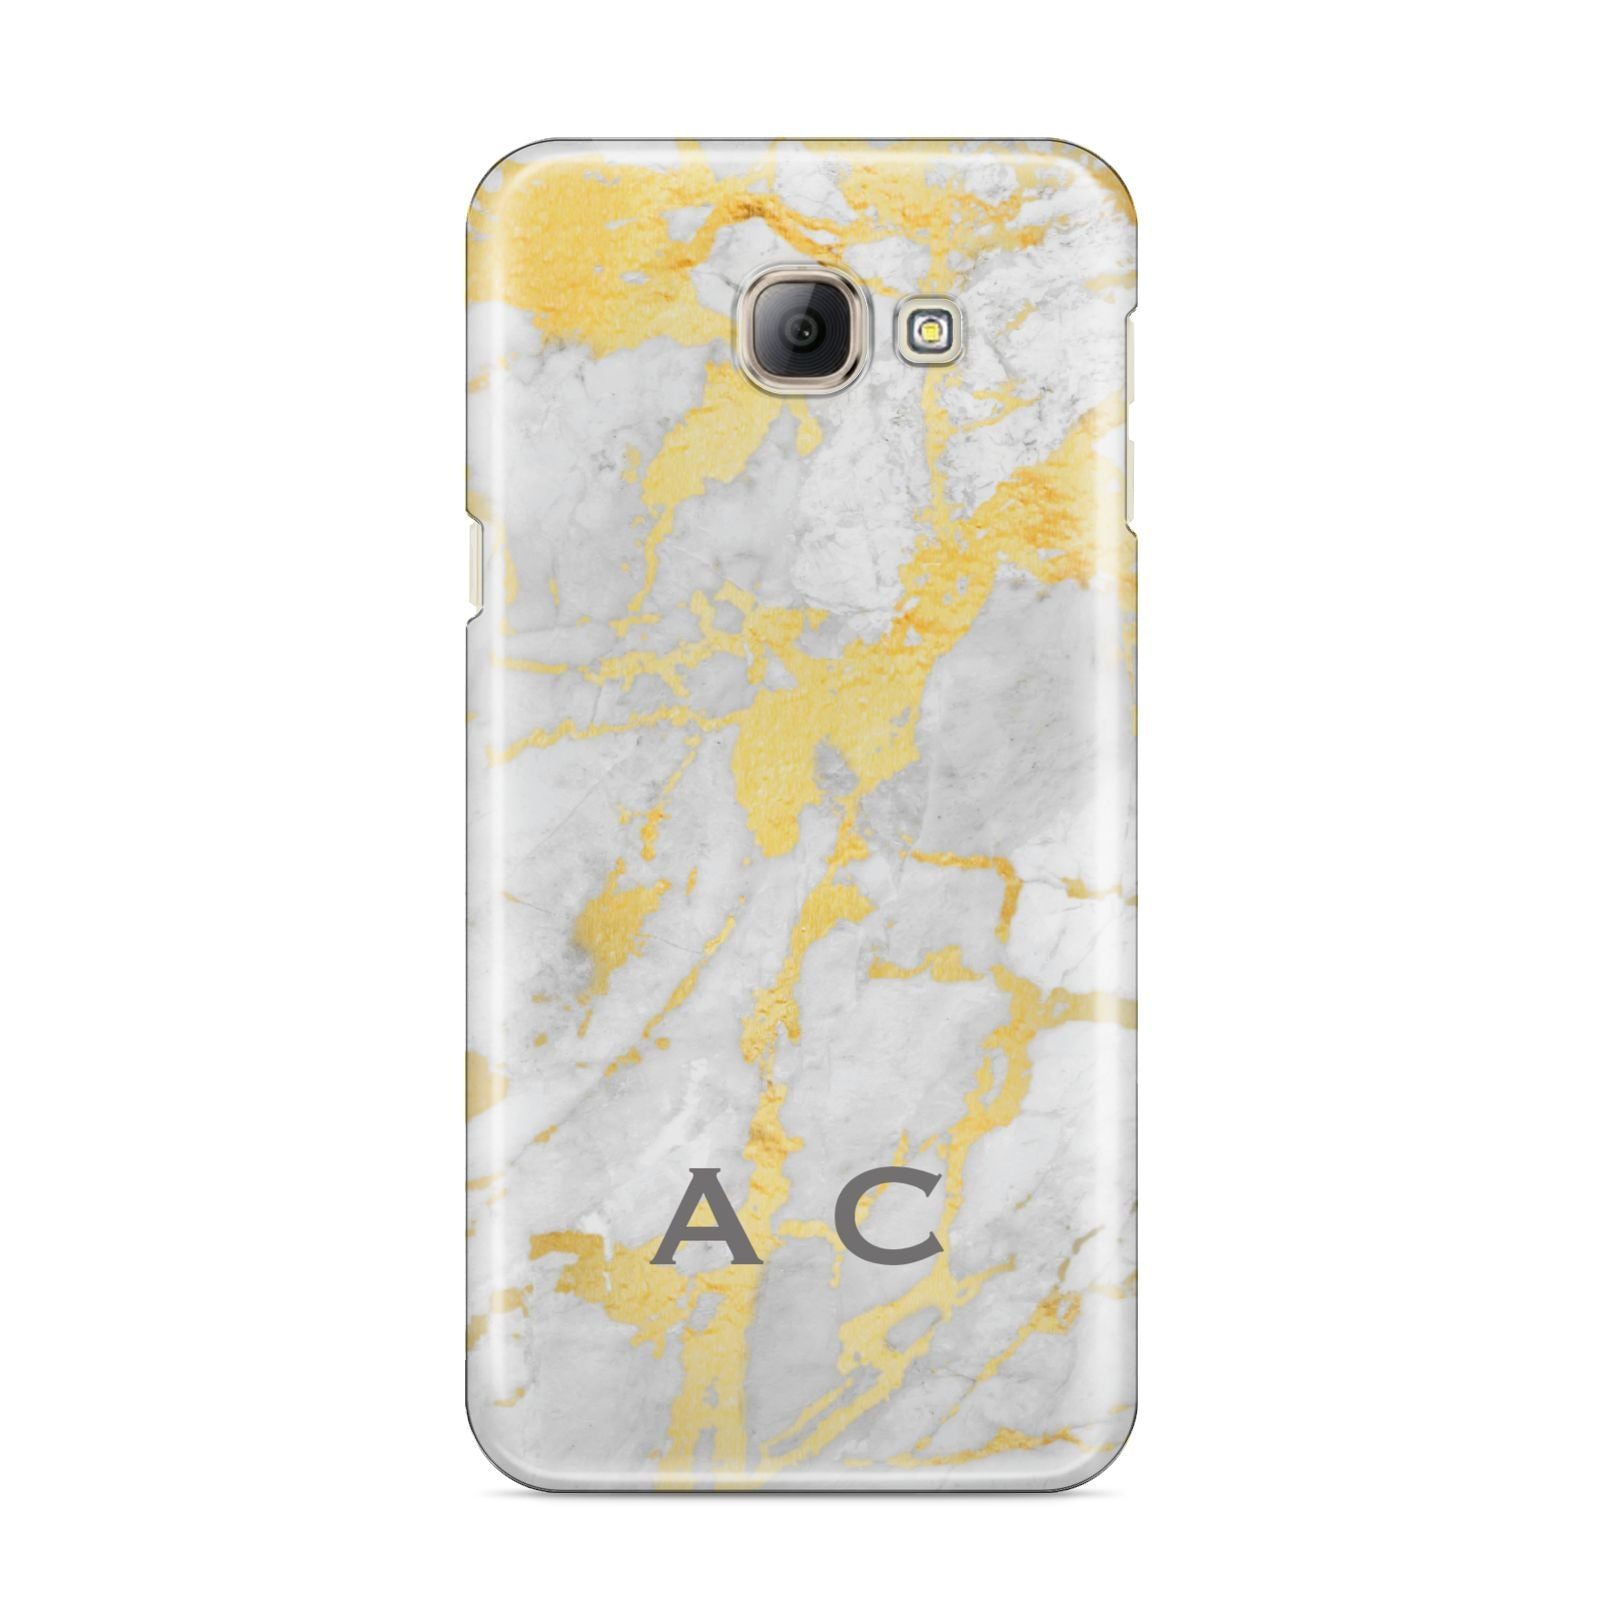 Gold Marble Initials Personalised Samsung Galaxy A8 2016 Case